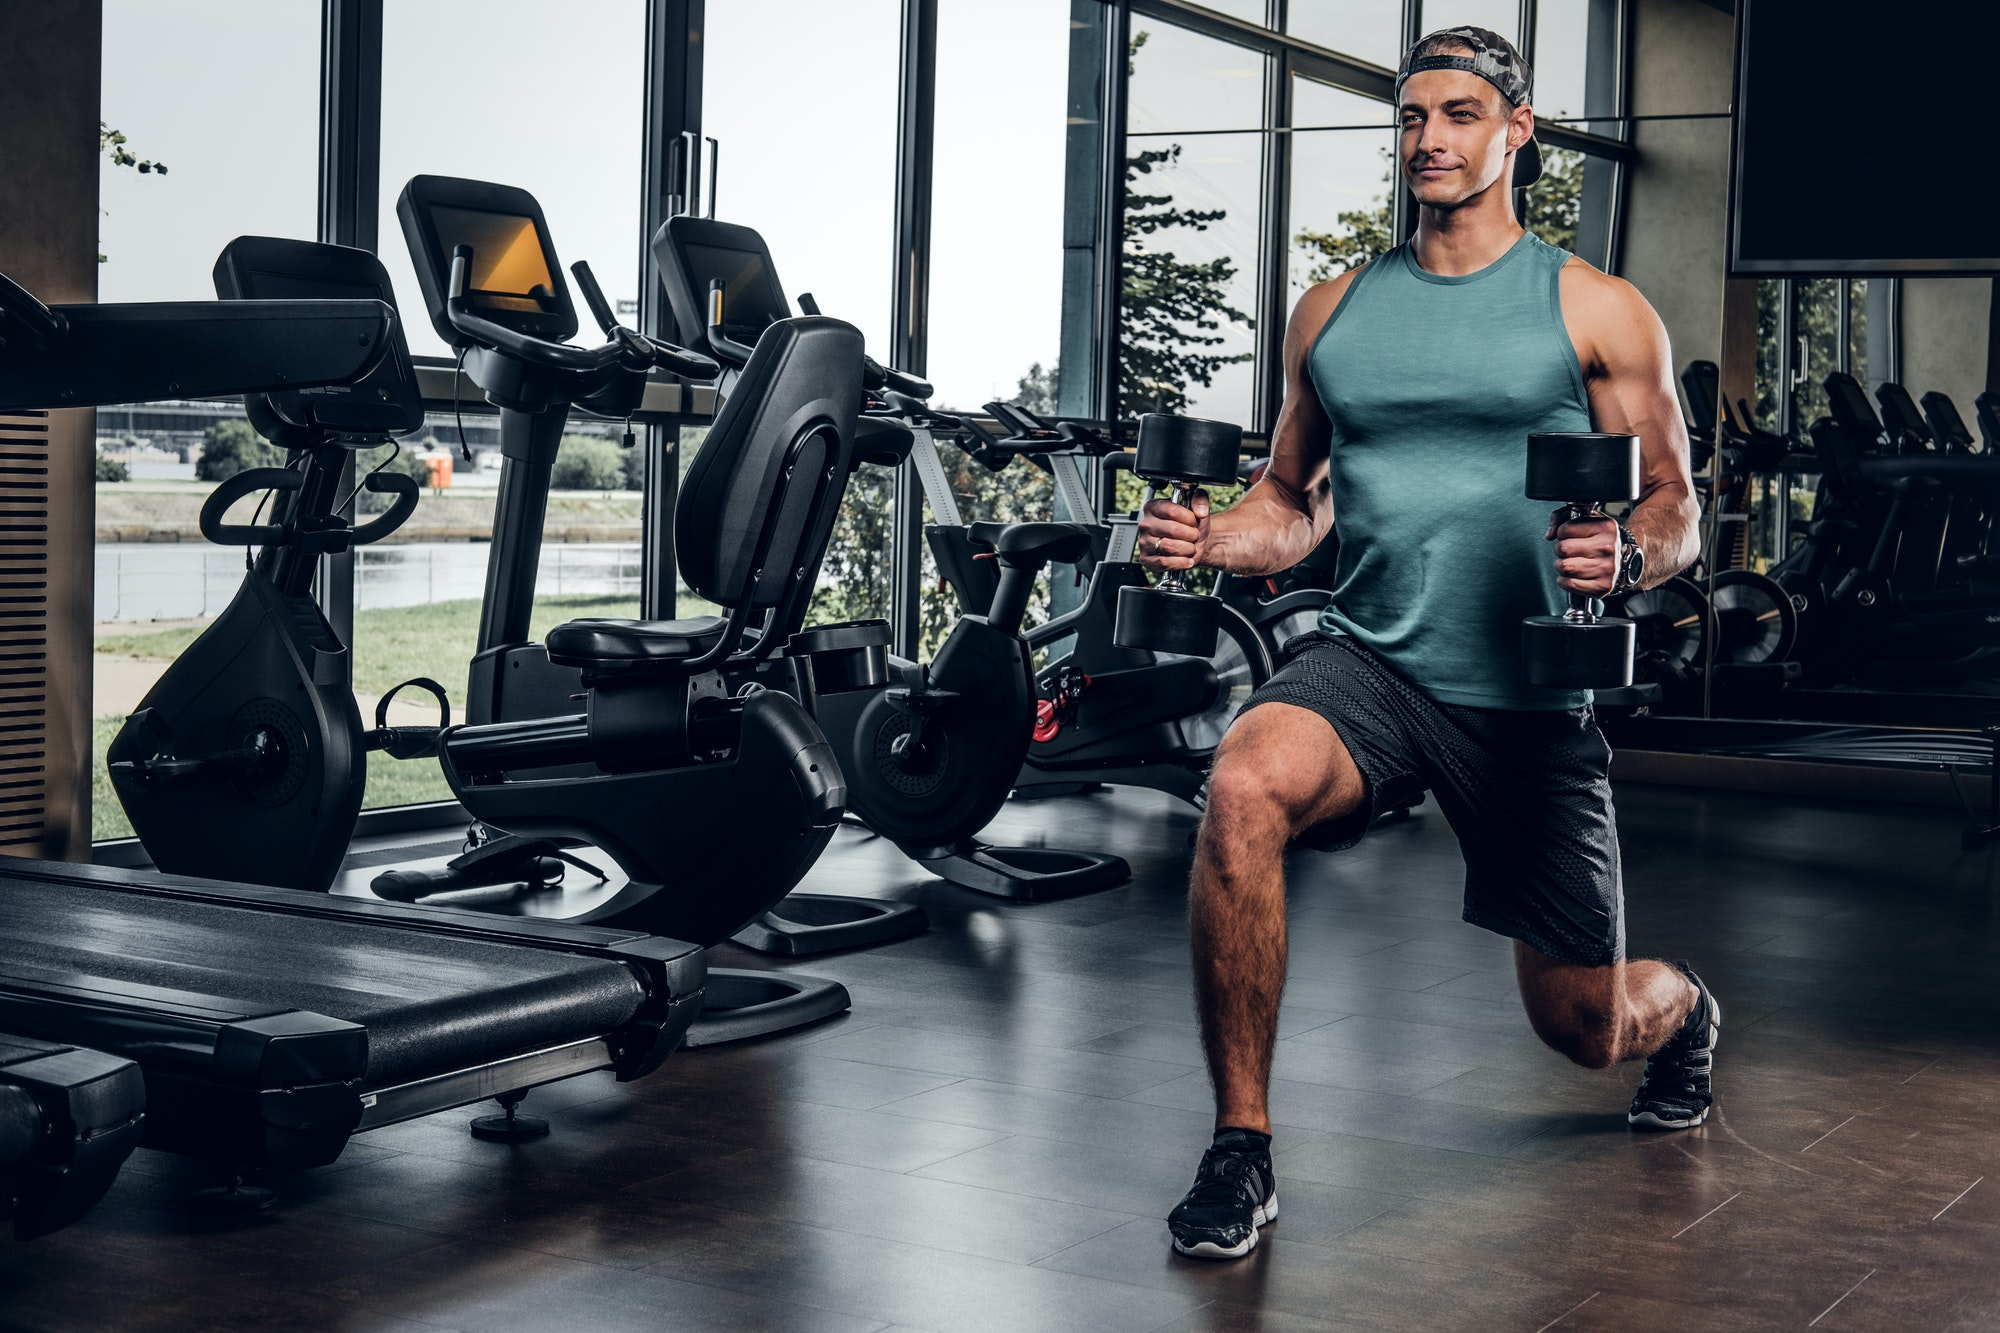 Man has training with dumbbells at gym